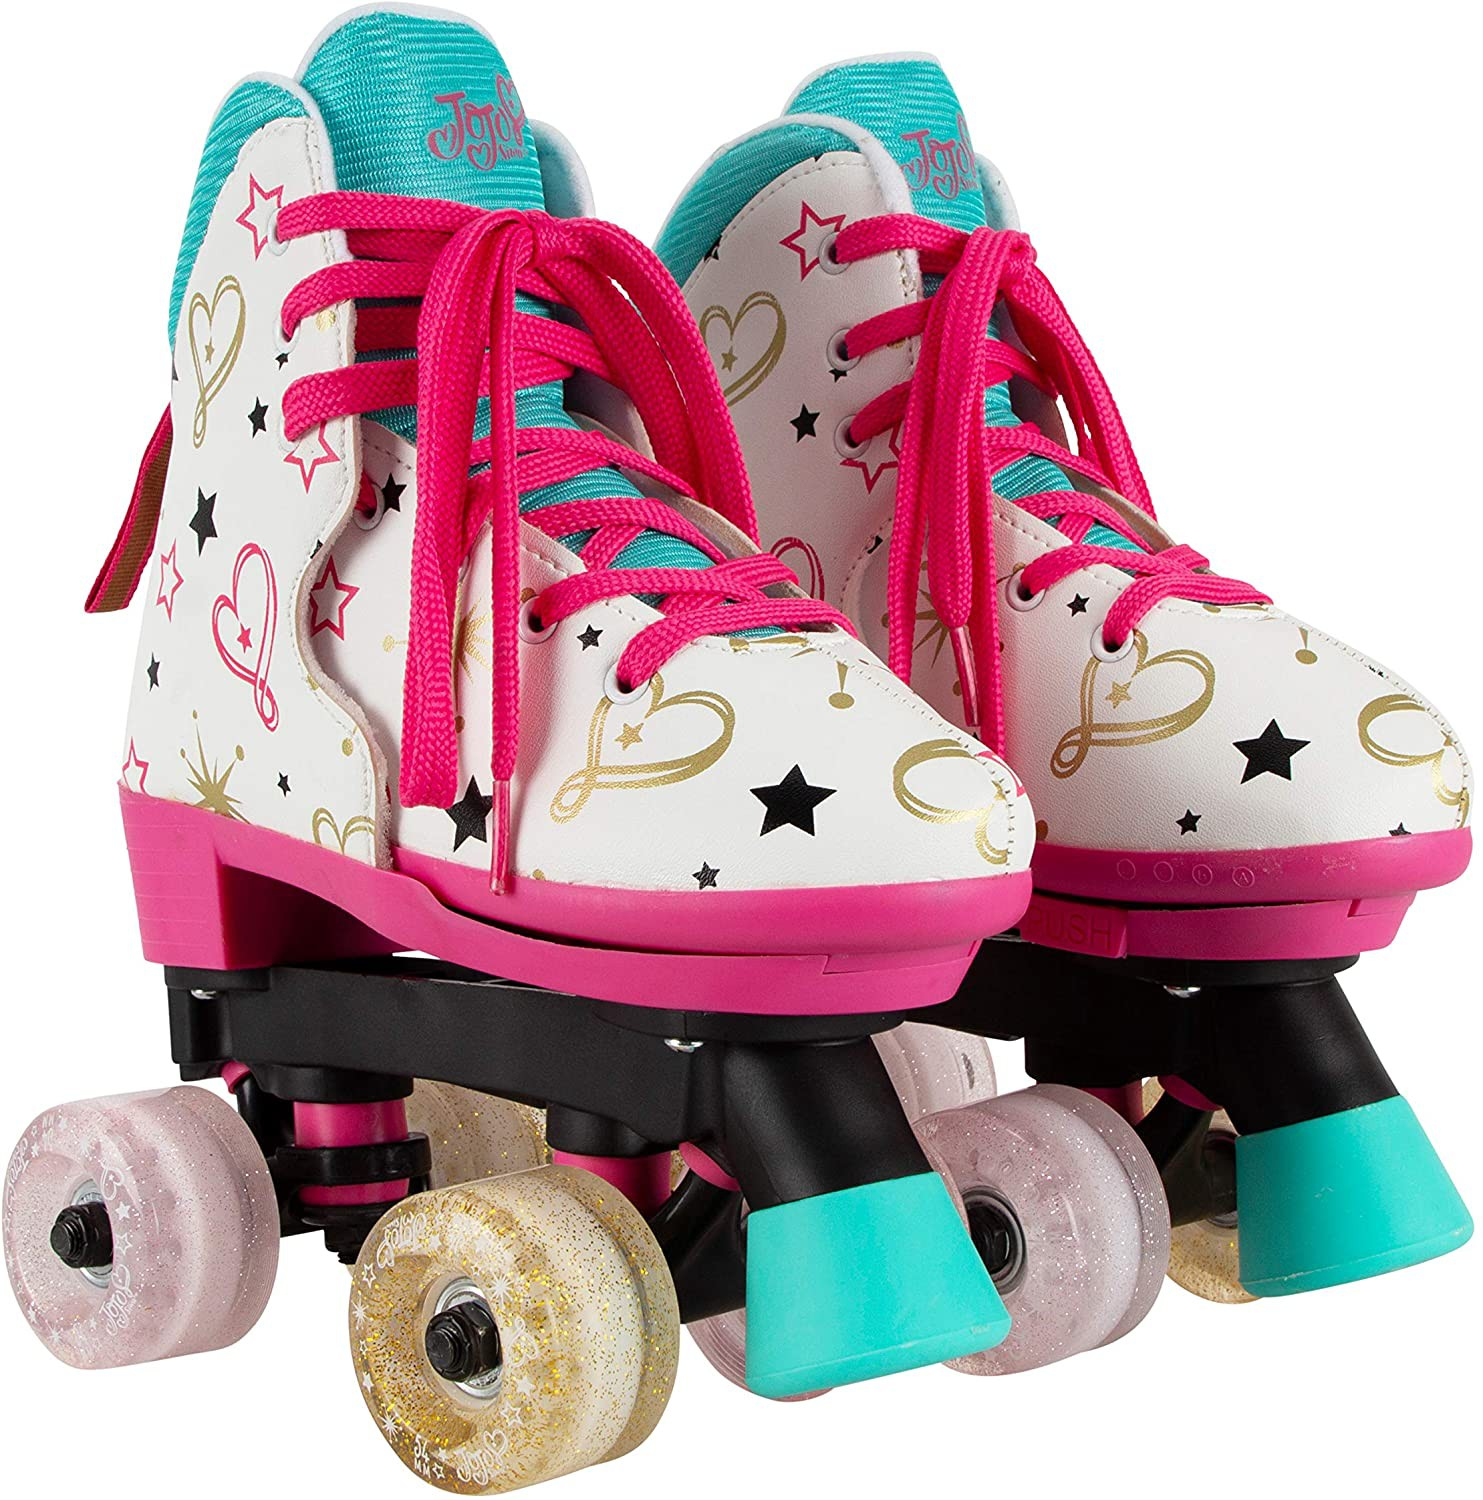 Circle Society Classic Adjustable Indoor and Outdoor Childrens Roller Skates - JoJo Siwa Party in Pink